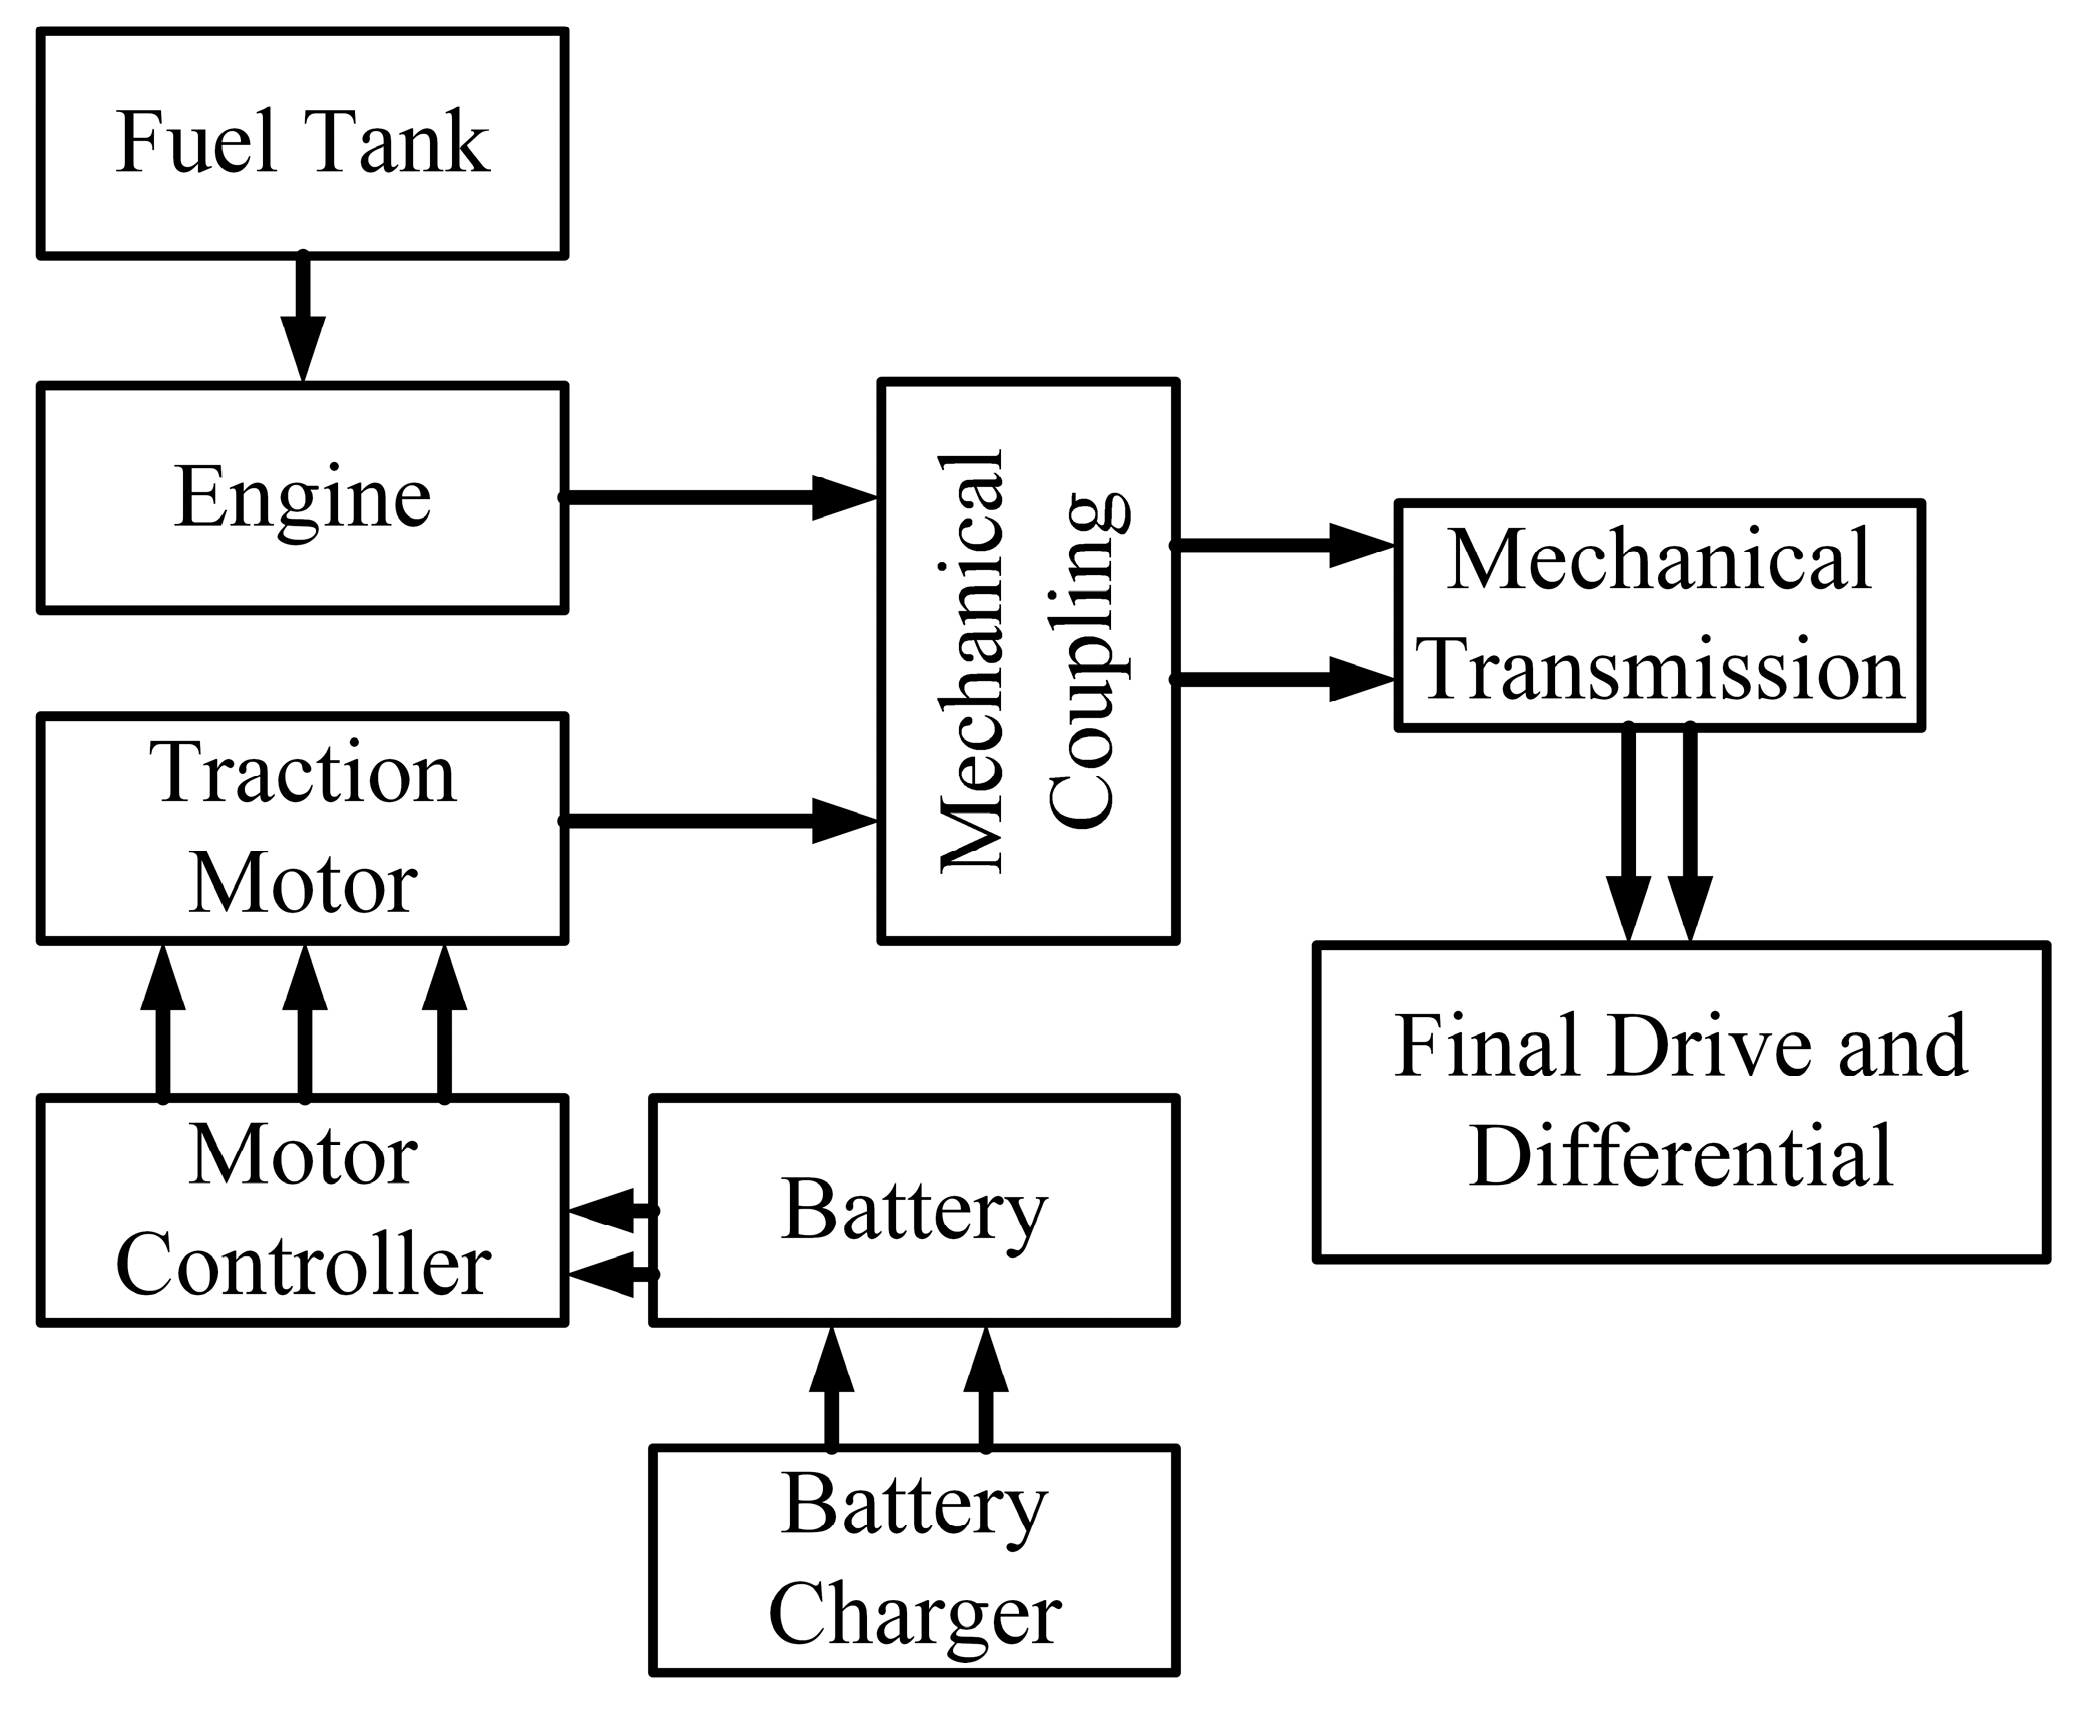 Energies Free Full Text A Comprehensive Study Of Key Electric Diagram Besides Ford Fuel Tank Selector Valve Wiring On E 450 10 01217 G019